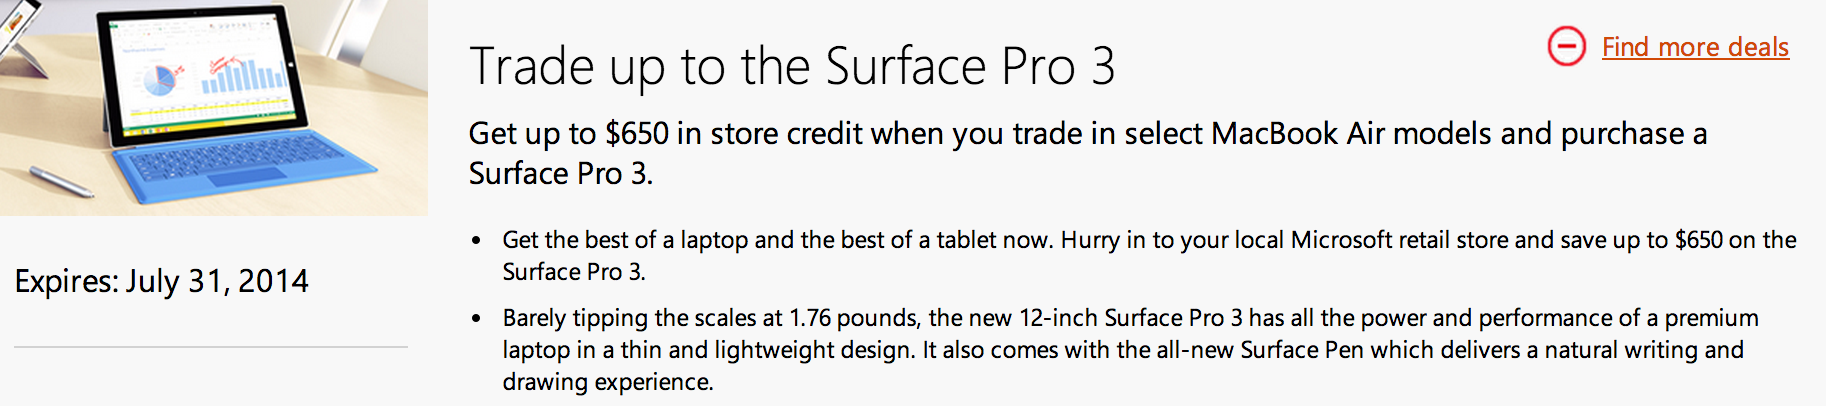 Surface-Pro-3-Macbook-trade-in-offer